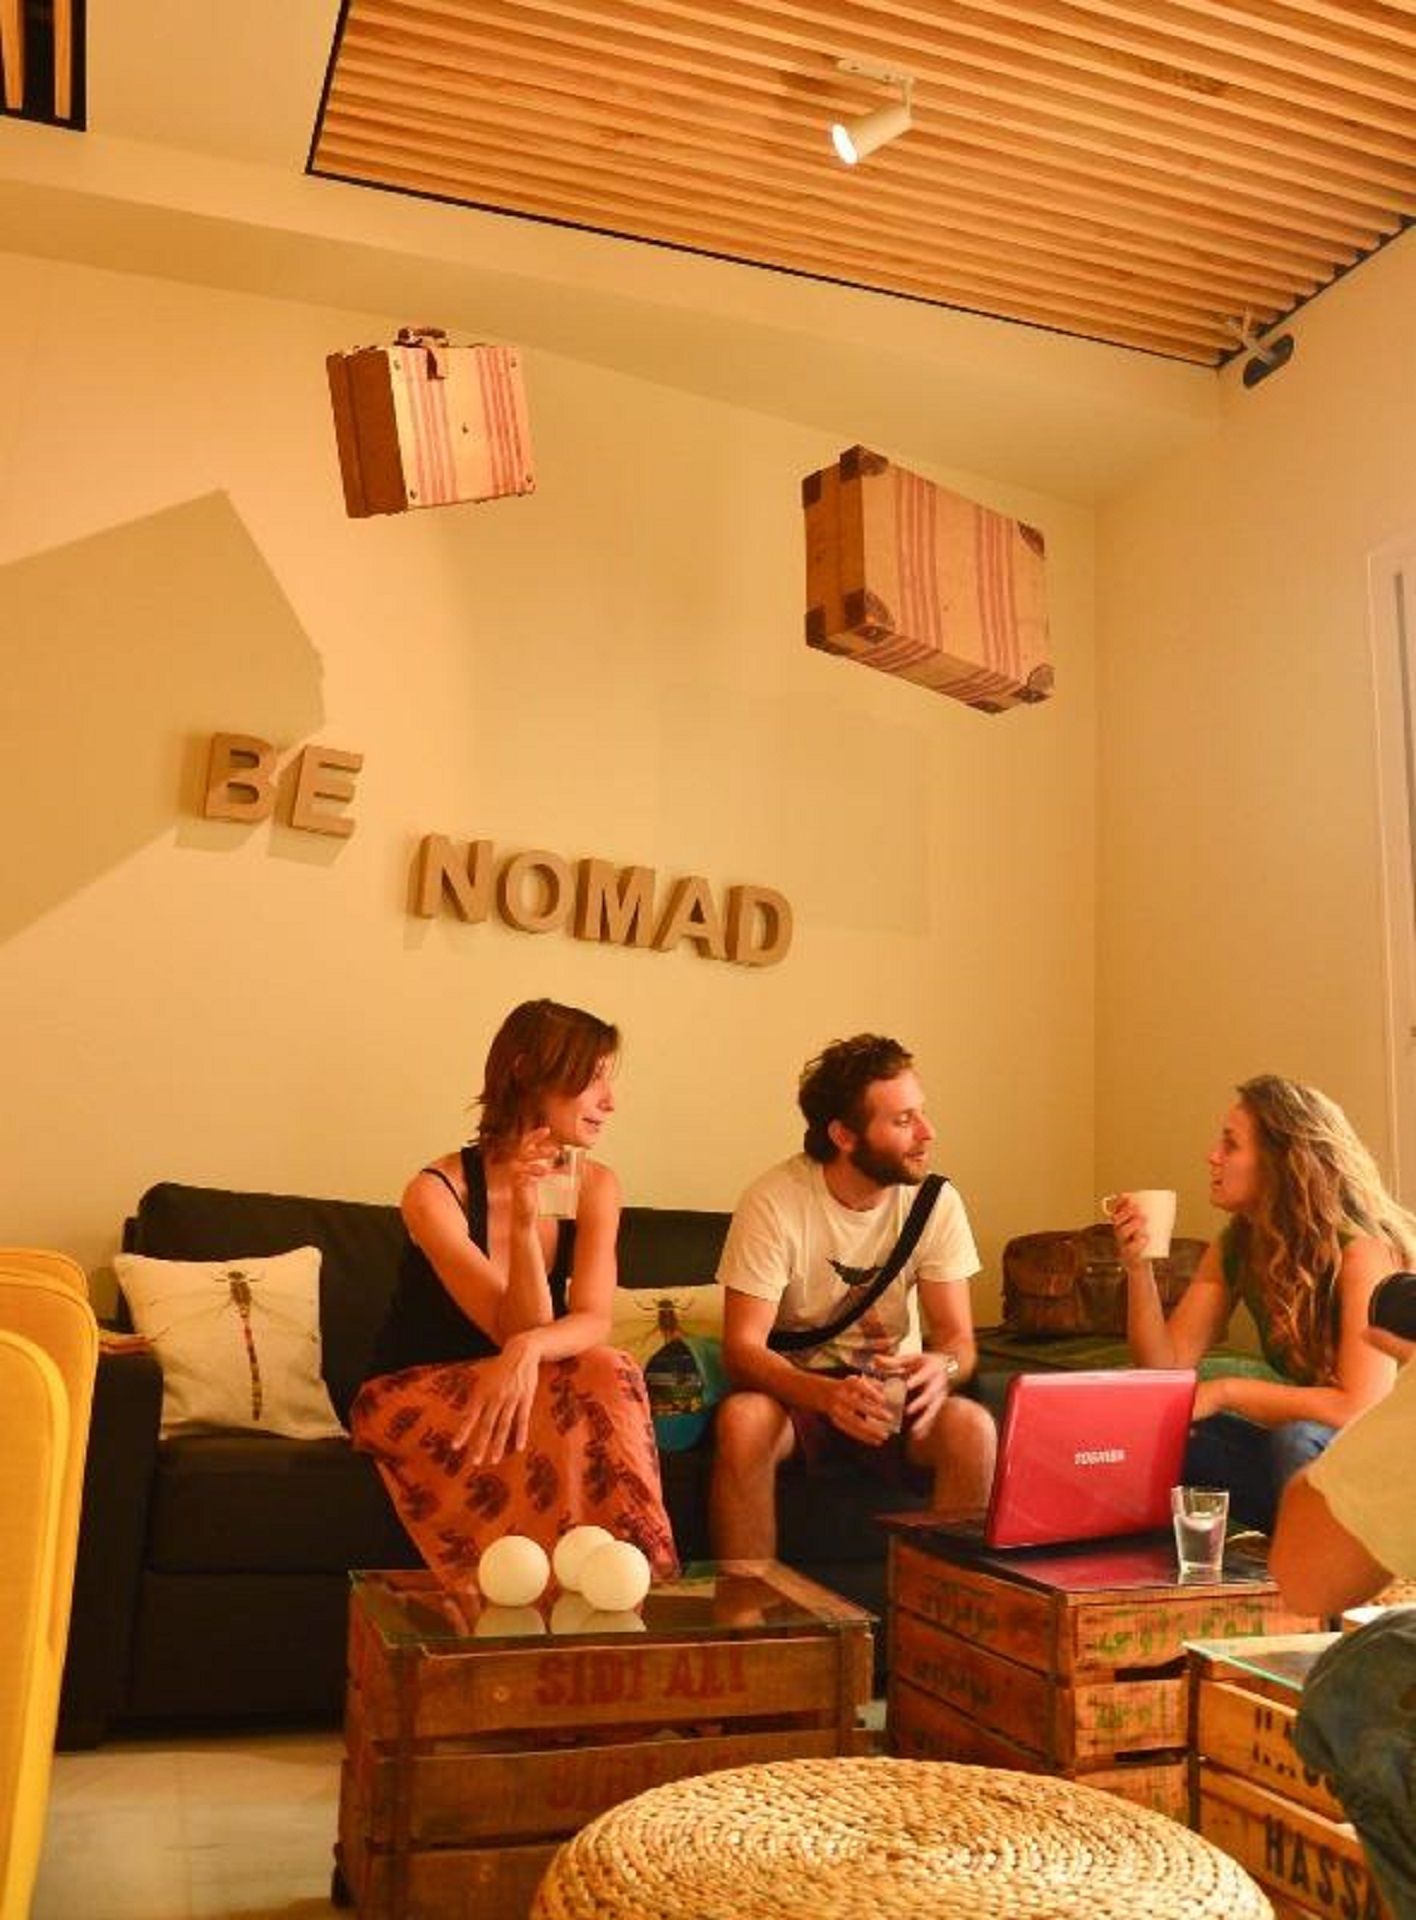 HOSTEL - The Nomad Hostel